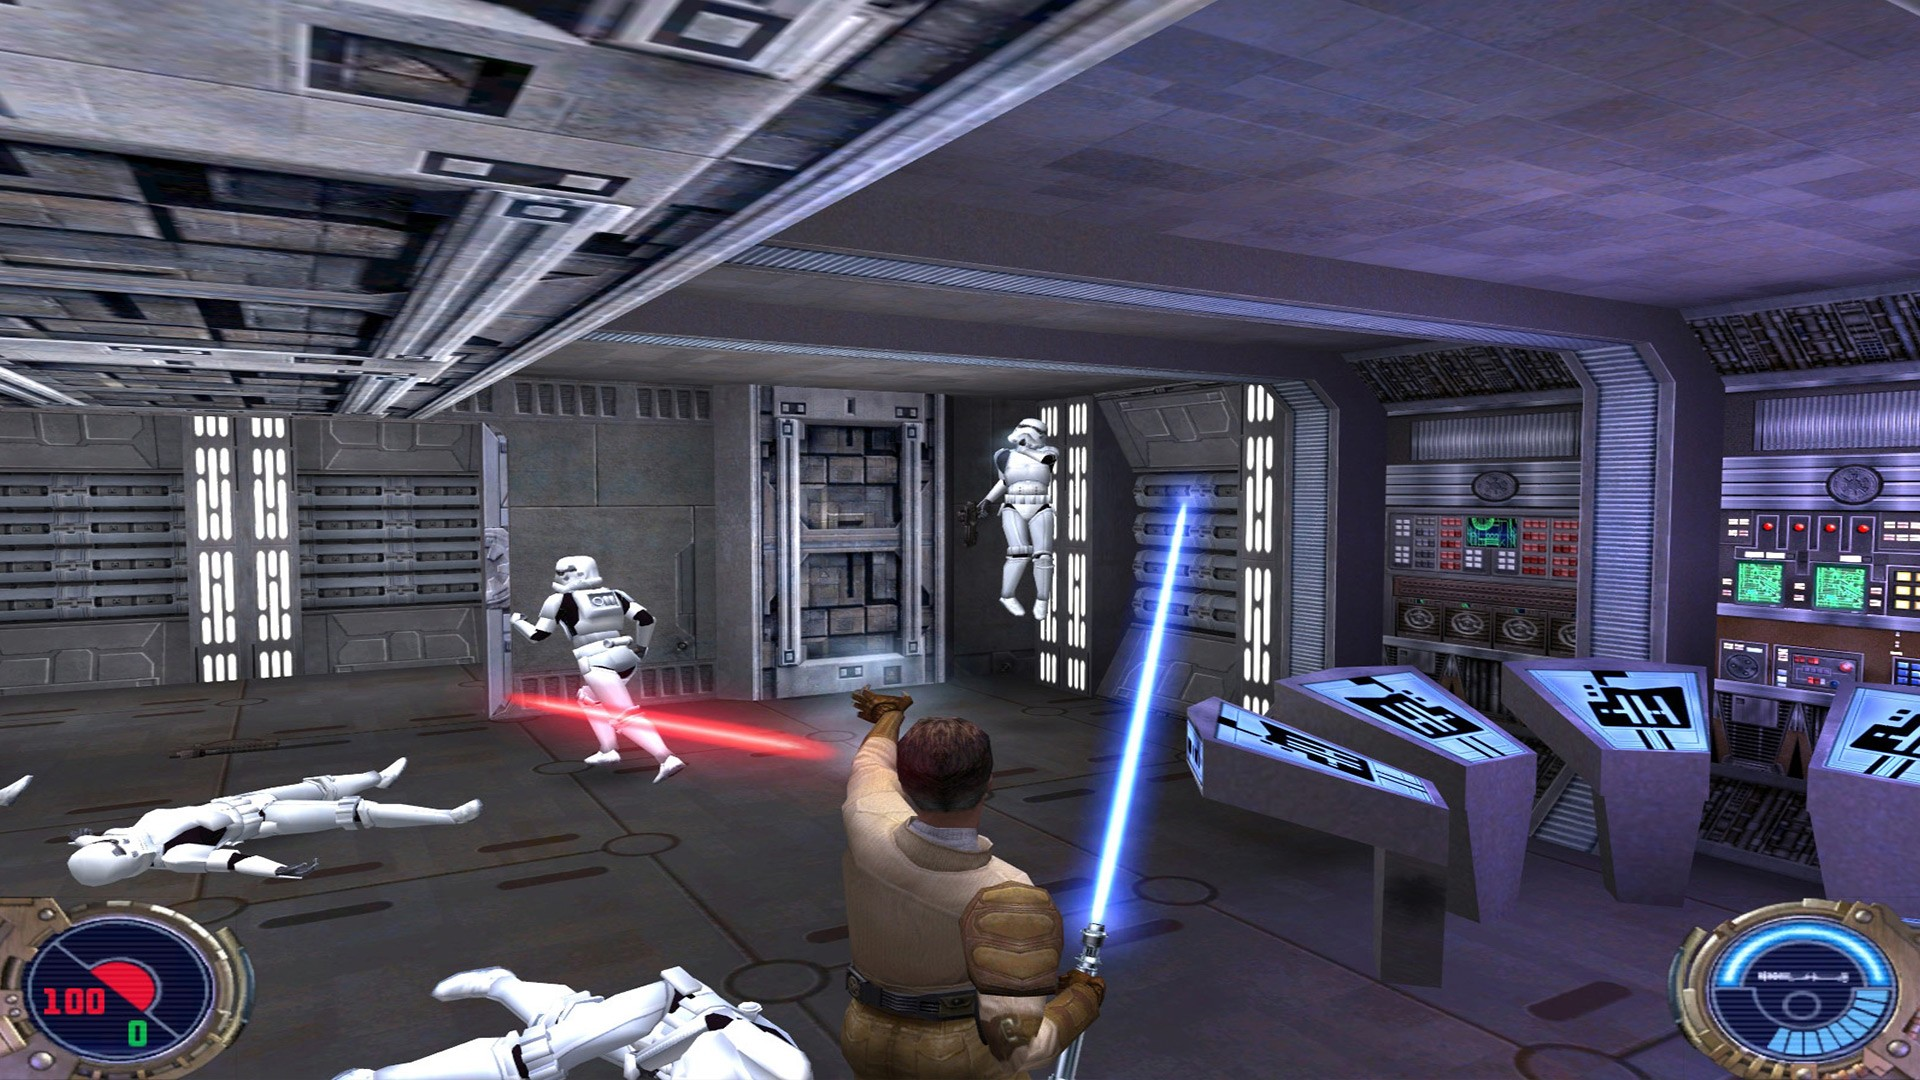 Action, Aspyr Media, Classic, disney interactive, LucasArts, Lucasfilm, multiplayer, PS4, PS4 Review, Rating 7/10, Raven Software, Sci-Fi, Star Wars, Star Wars Jedi Knight II: Jedi Outcast, Star Wars Jedi Knight II: Jedi Outcast Review